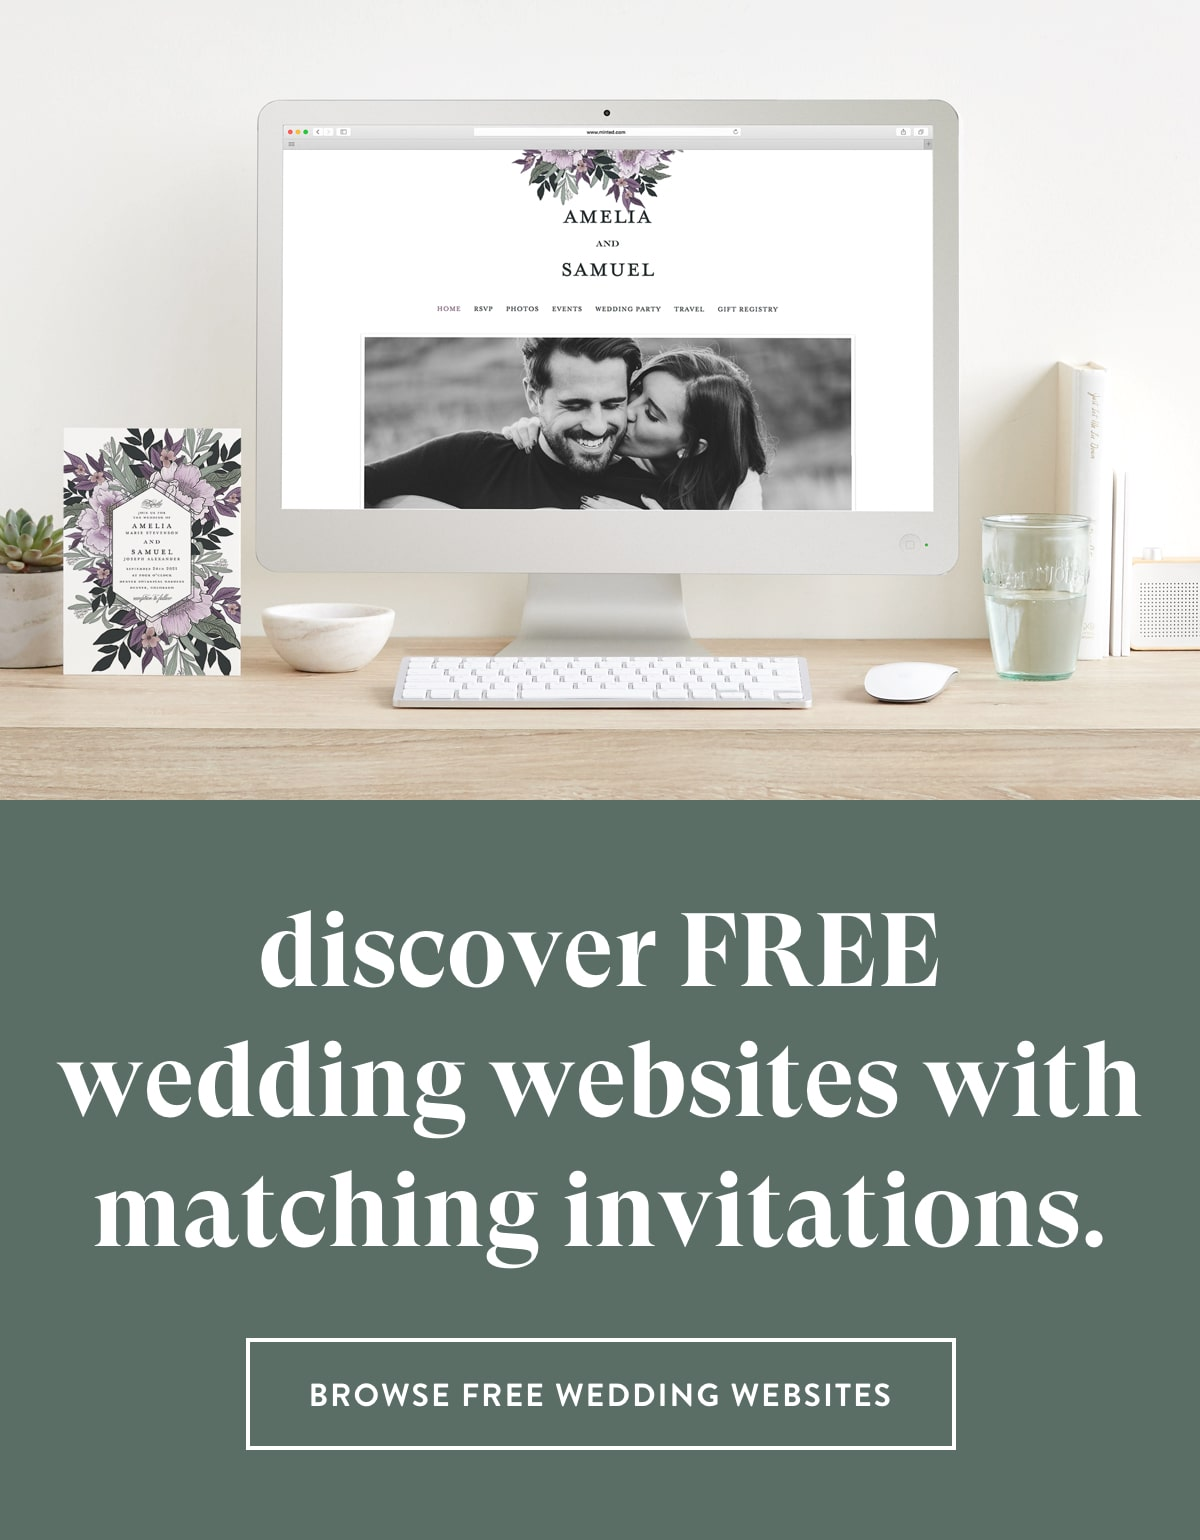 Browse Free Wedding Websites